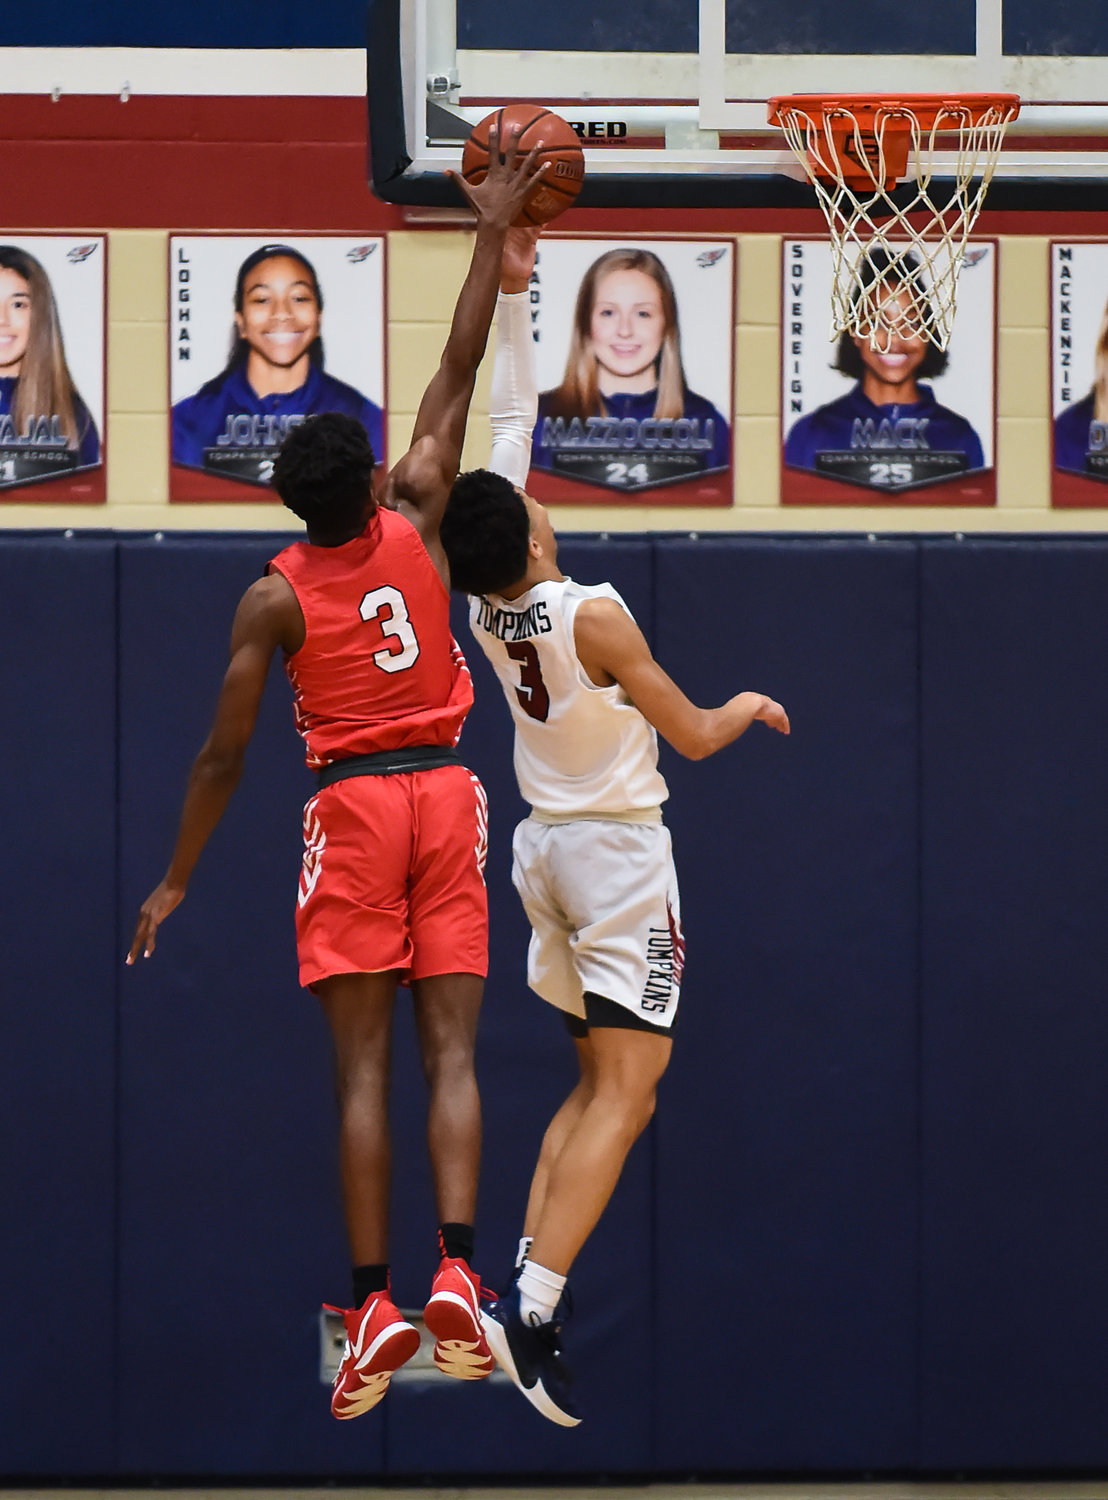 Katy Tx. Jan. 10, 2019: Katy's Ryon Johnson (3) goes up for the block on a shot by Tompkins Johnny Nash (3) during a district basketball game between Tompkins Falcons and Katy Tigers at Tompkins HS.  (Photo by Mark Goodman / Katy Times)